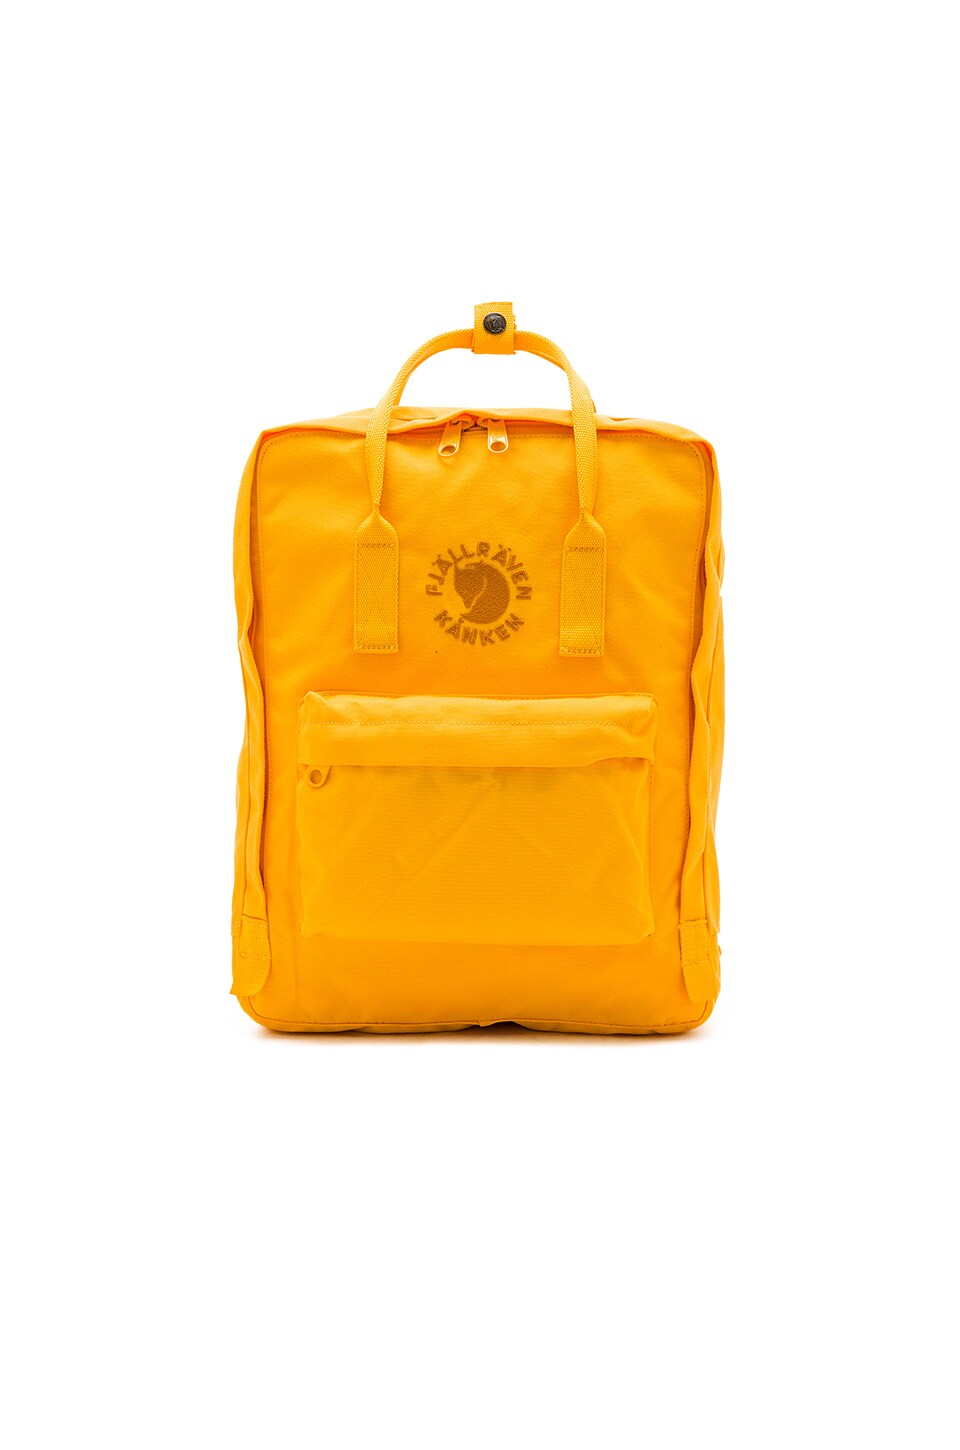 Fjallraven Re-Kanken in Sunflower Yellow